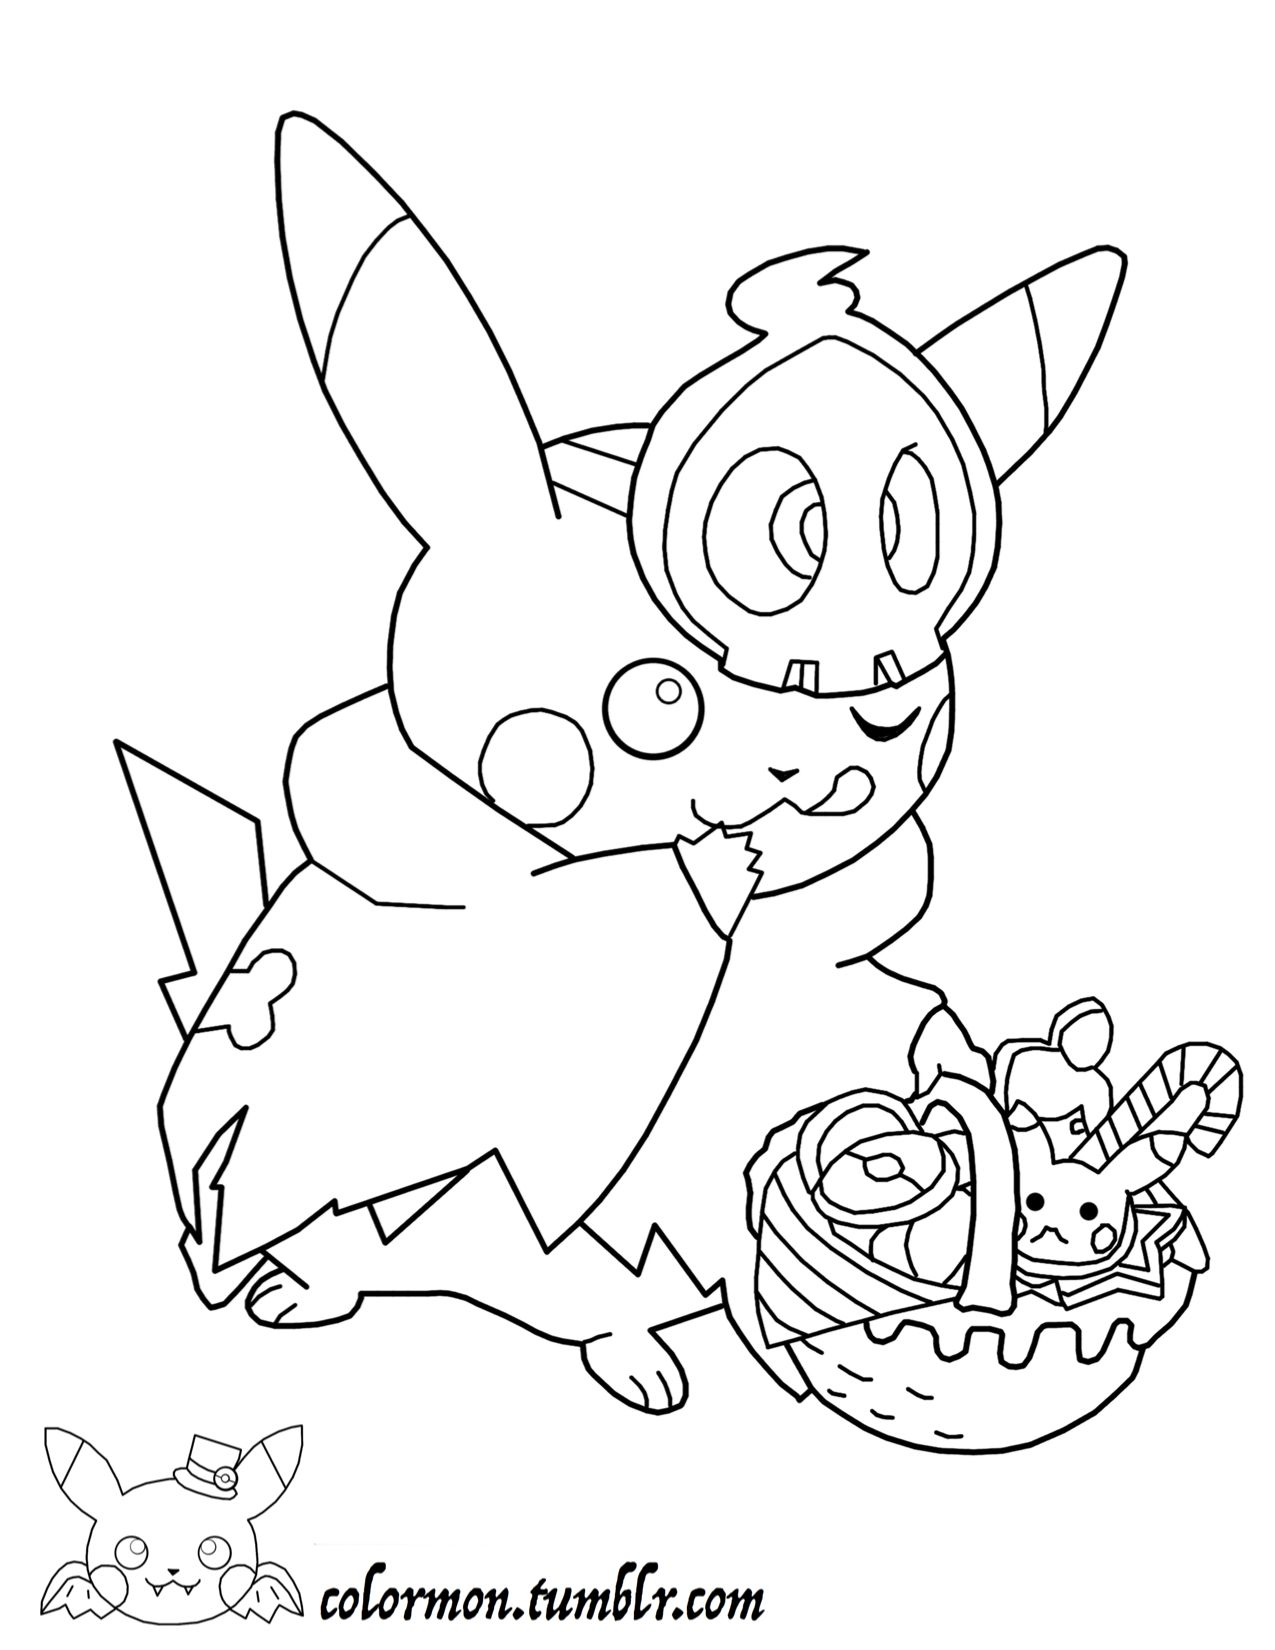 Pin On Craft Coloring Pages